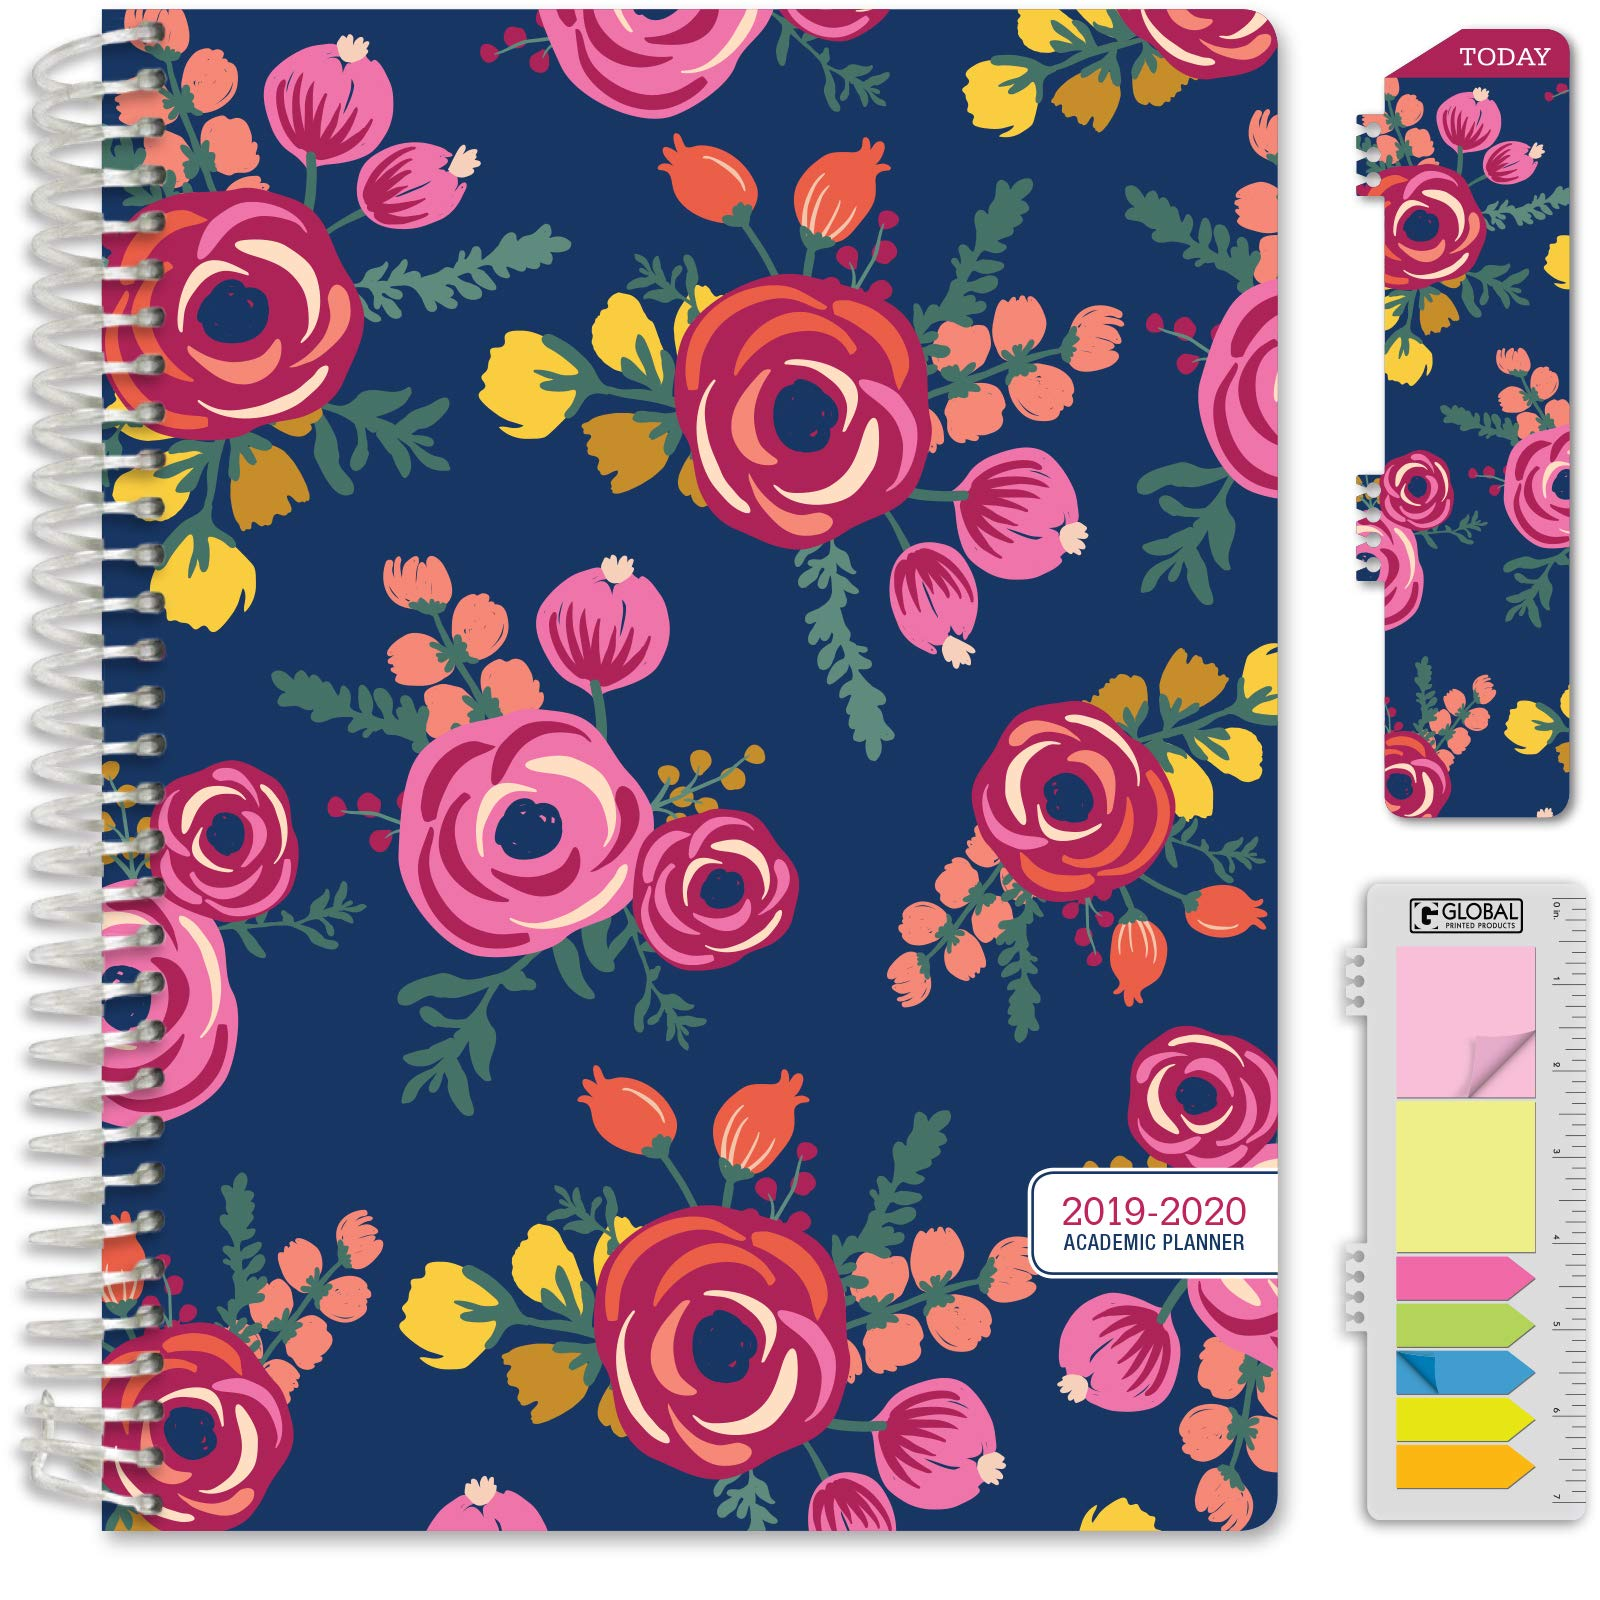 HARDCOVER Academic Year 2019-2020 Planner: (June 2019 Through July 2020) 8.5''x11'' Daily Weekly Monthly Planner Yearly Agenda. Bonus Bookmark, Pocket Folder and Sticky Note Set (Bloom Cover)